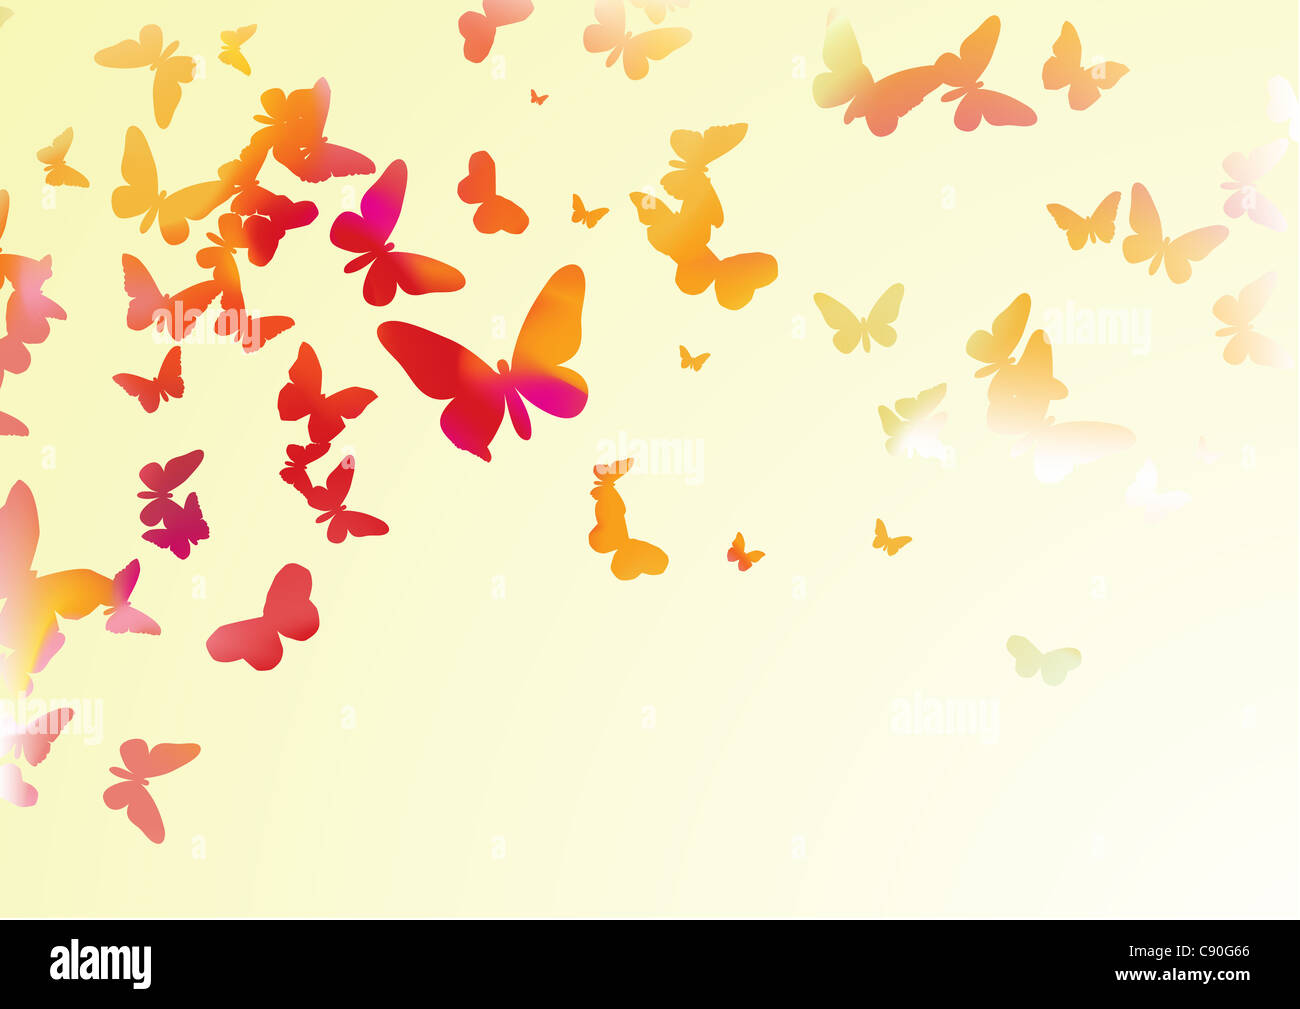 illustration of many colorful butterflies of different forms flying around - Stock Image